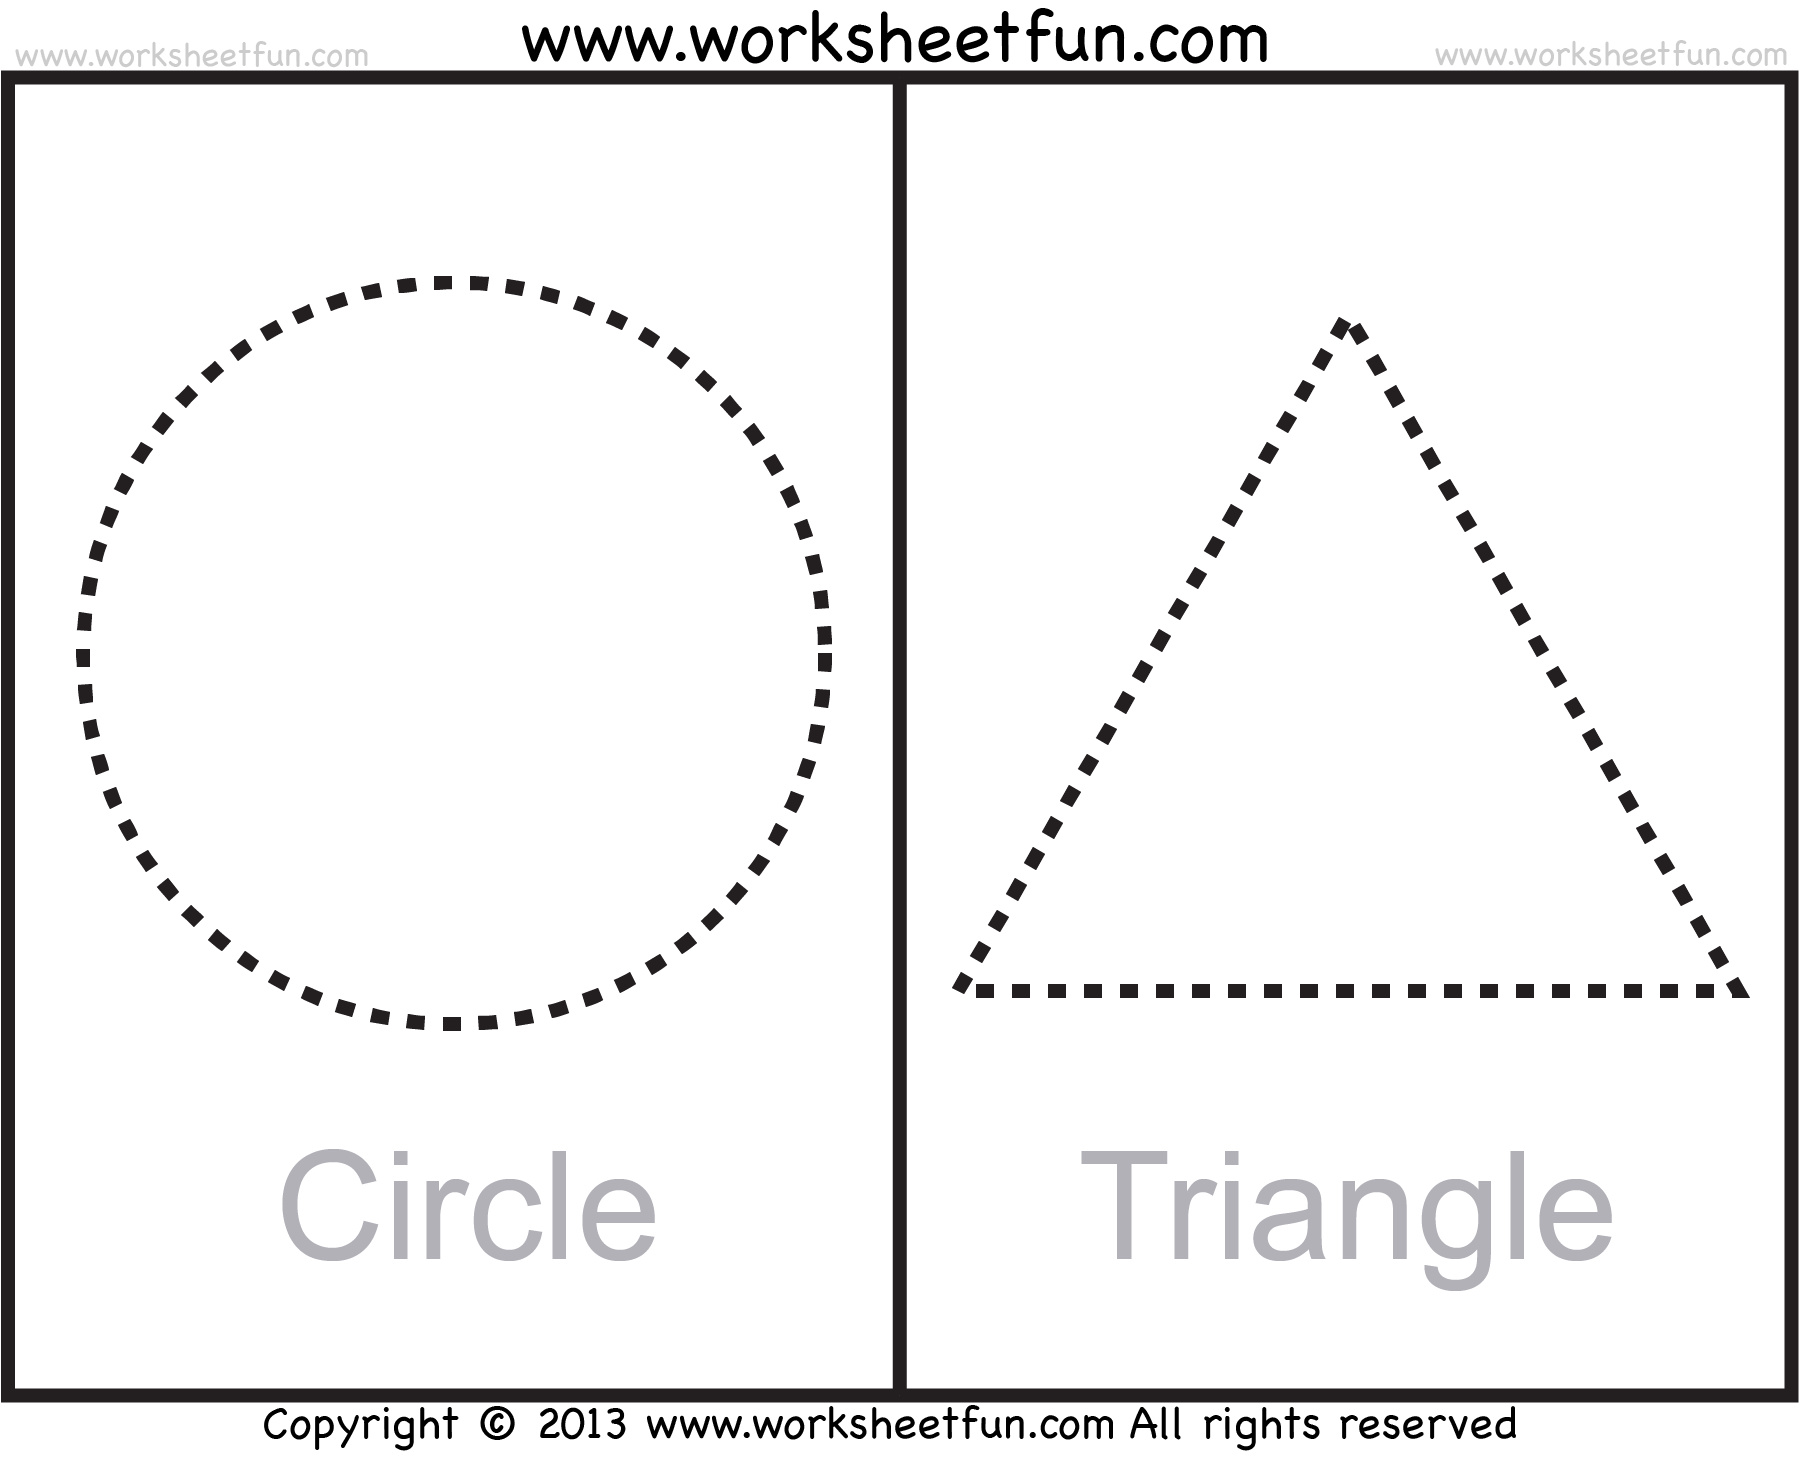 Shapes Circle Triangle Square Rectangle Rhombus Oval 9 Worksheets Free Printable